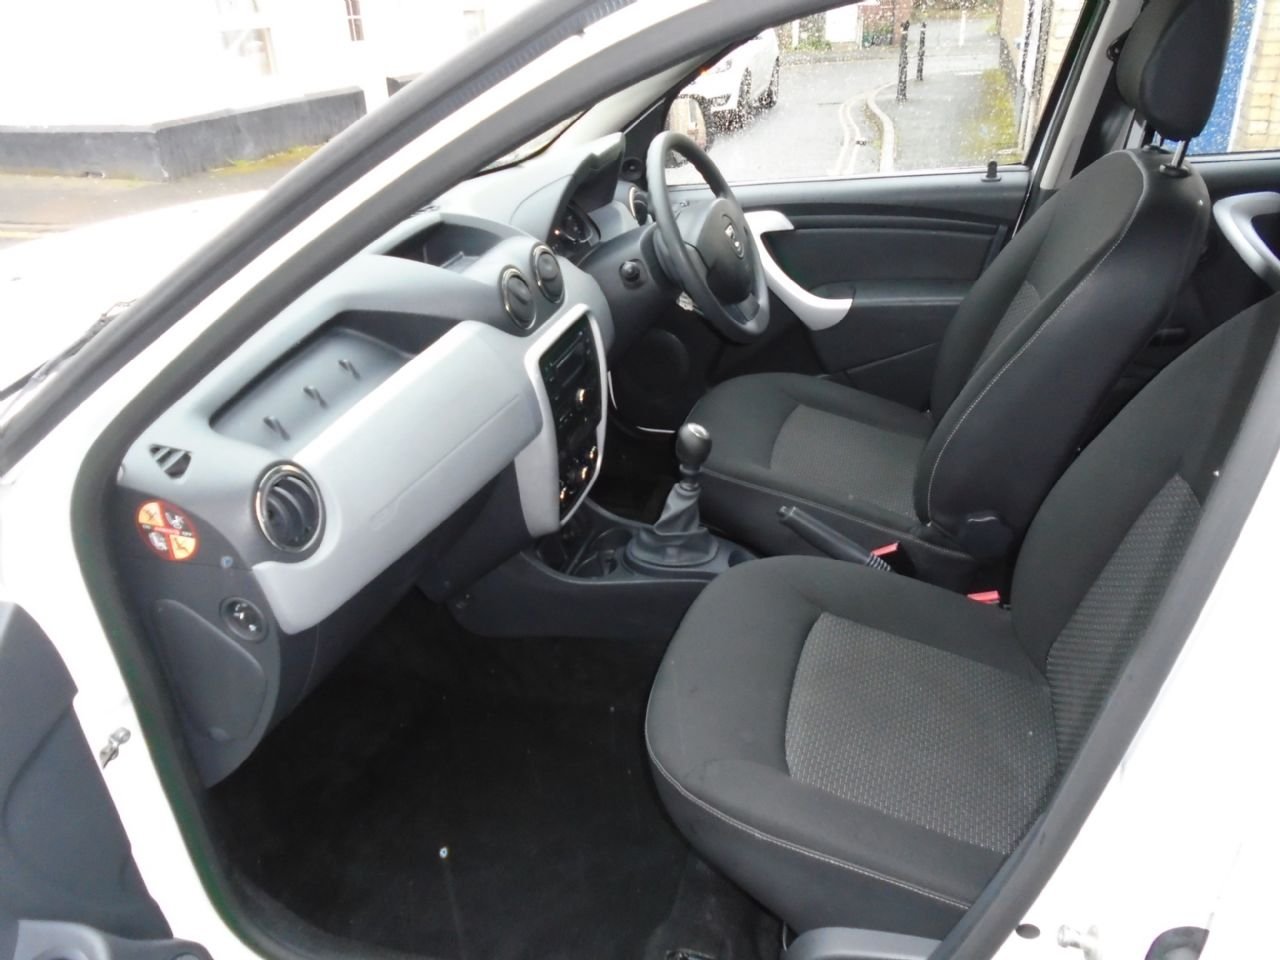 DACIA DUSTER Ambiance dCi 110 4x2 - Picture 5